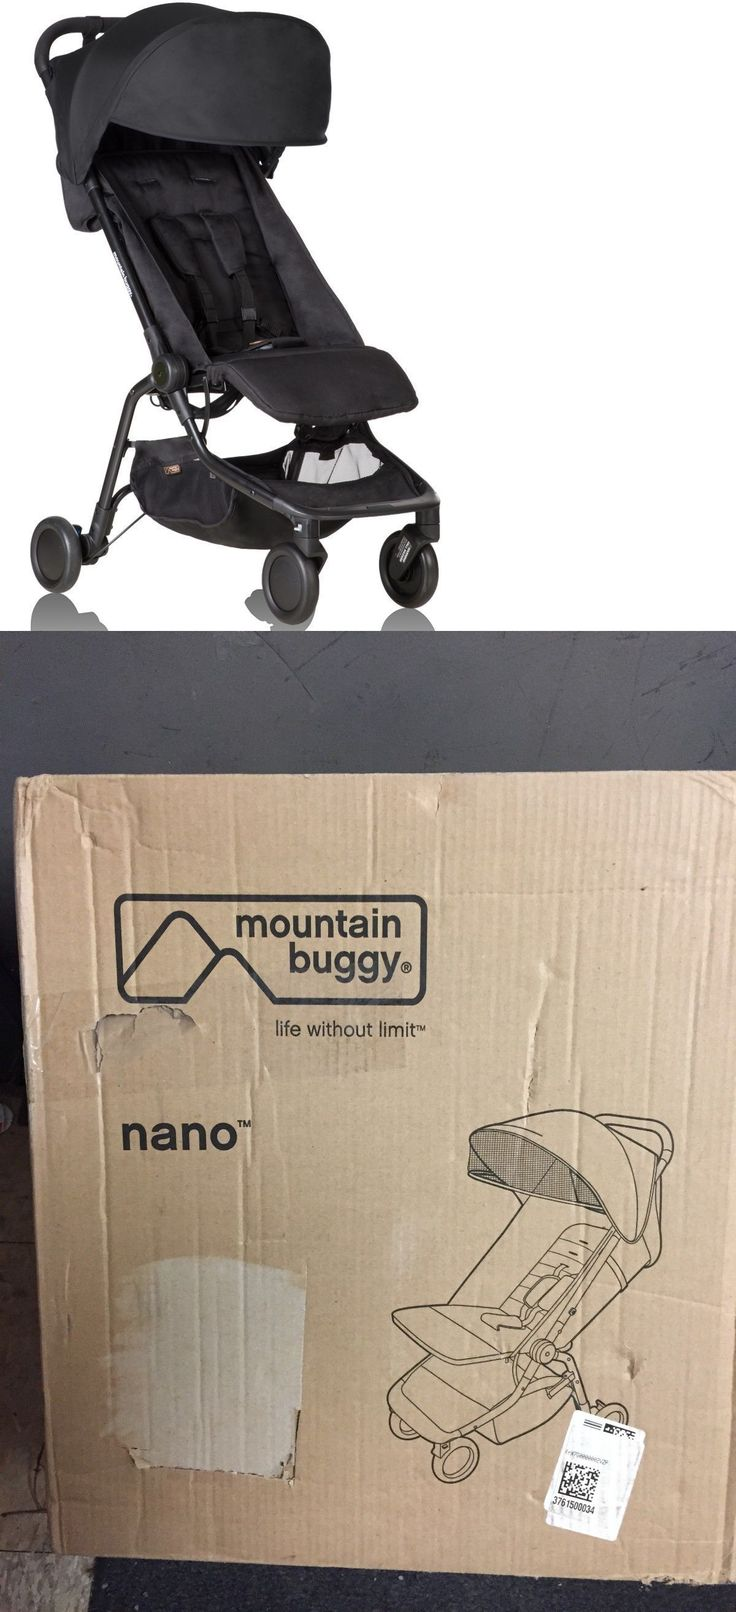 Other Stroller Accessories 180917: Mountain Buggy Nano V2 Lightweight Compact Fold Baby Travel Stroller Black 2015 -> BUY IT NOW ONLY: $179.99 on eBay!